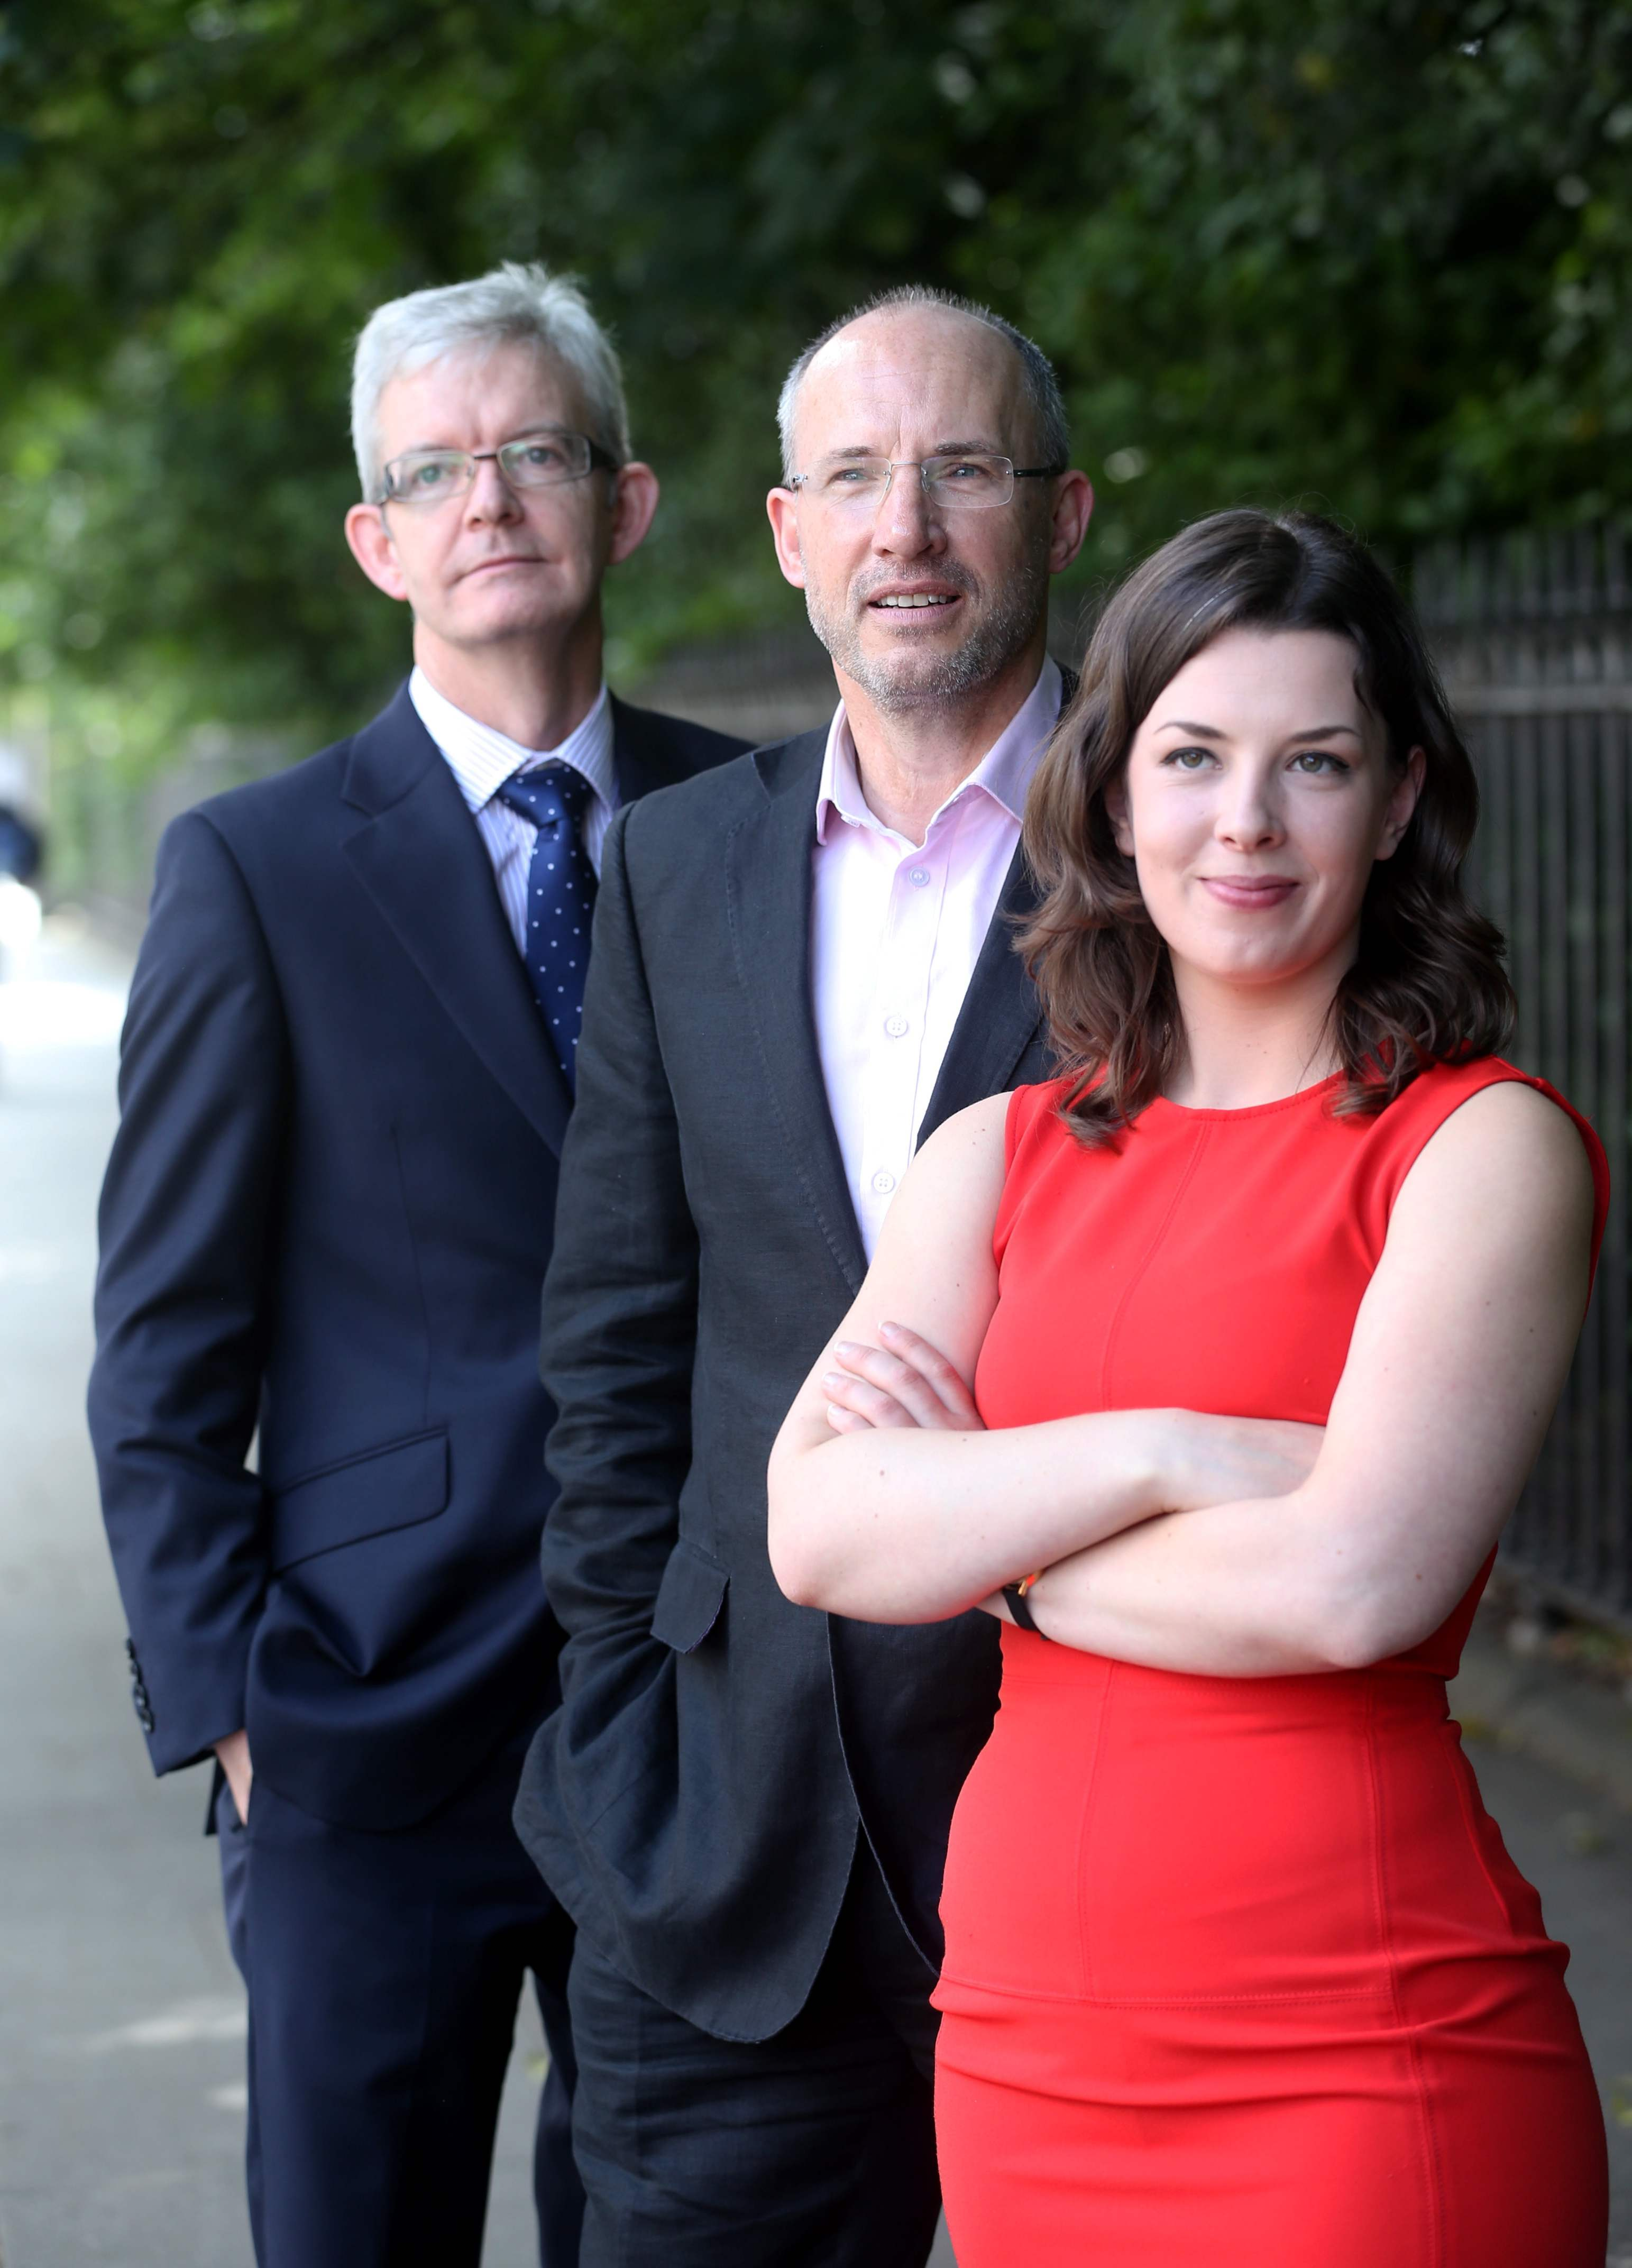 left to right: Joe Healy, Manager of Enterprise Ireland's HPSU Accelerate Department, Anthony Quigley, Chairman, Code Institute and Helen Norris, Marketing Manager, Kernel Capital. Picture Jason Clarke